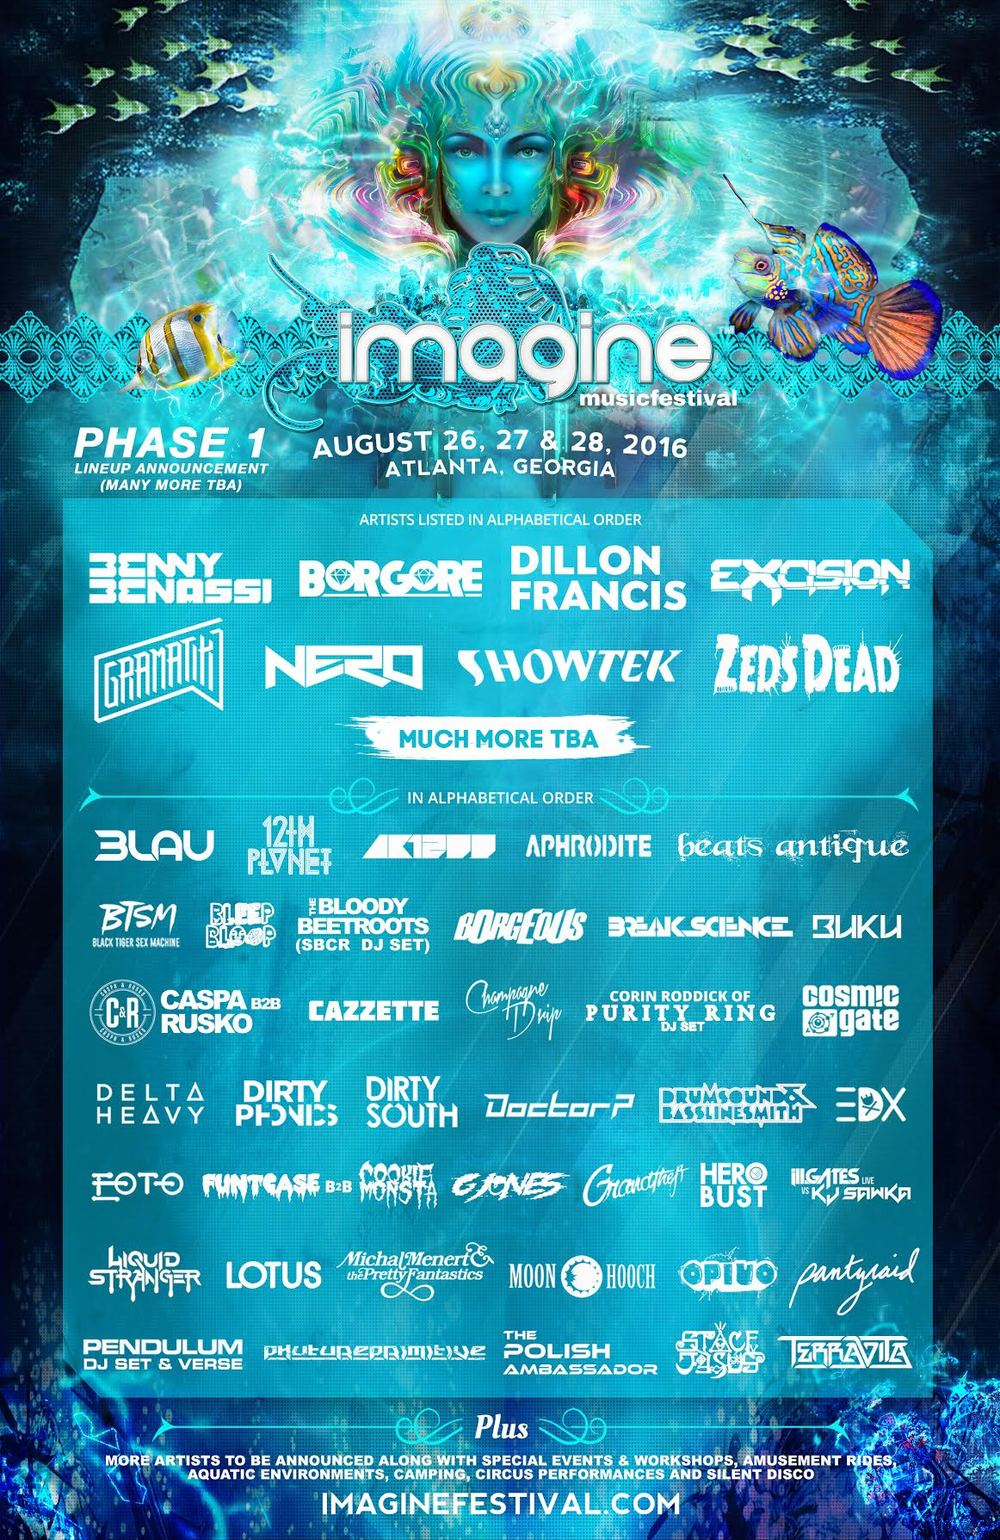 imagine music festival edm